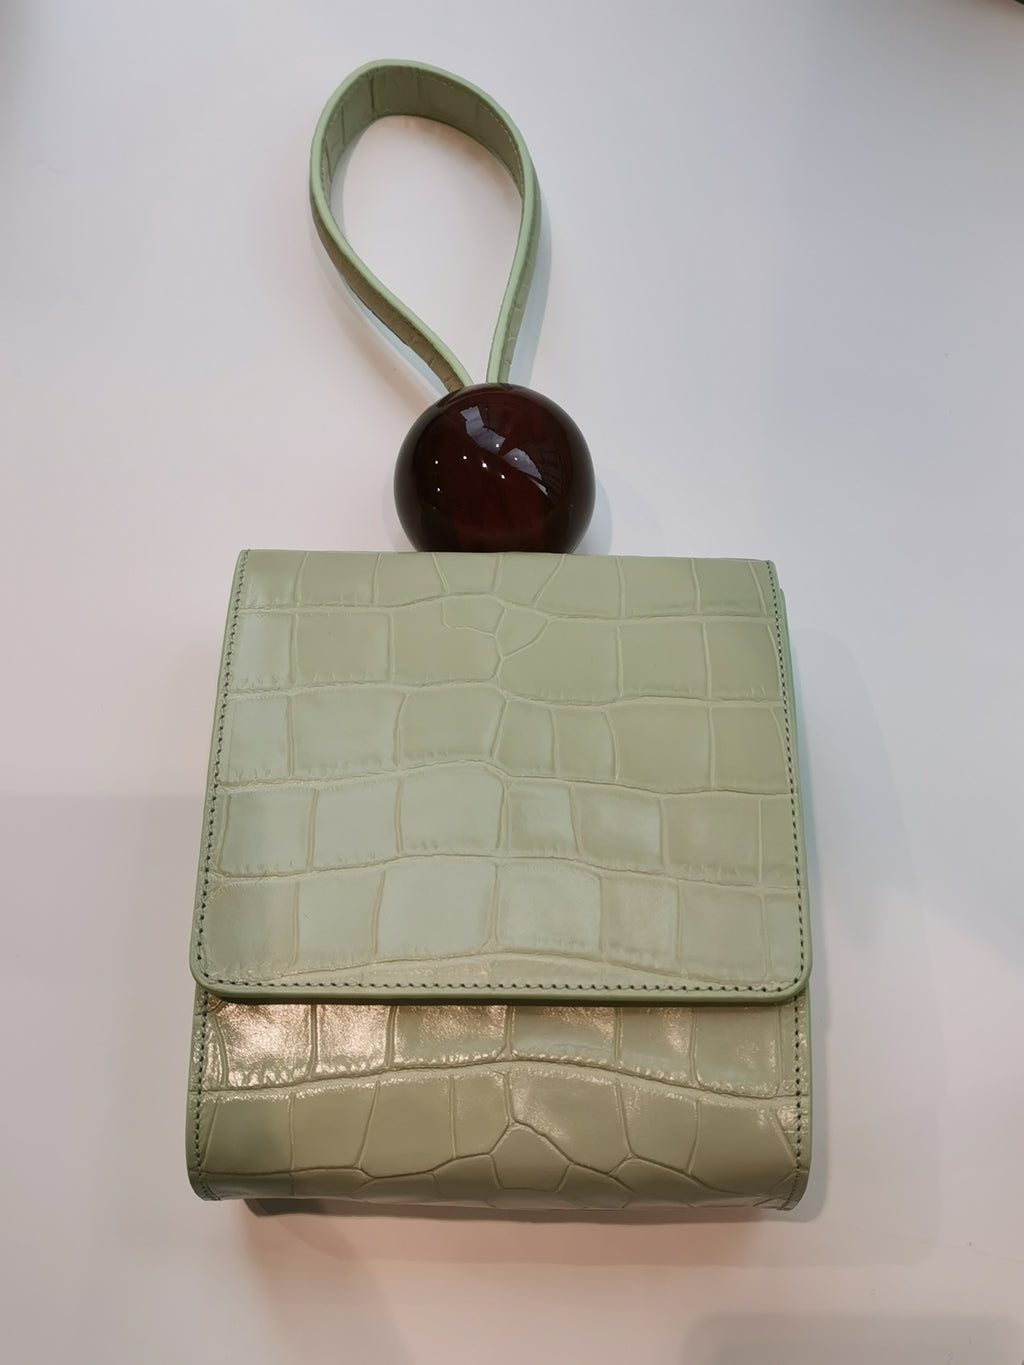 BY FAR - Ball Bag vert Croco Embossed Leather